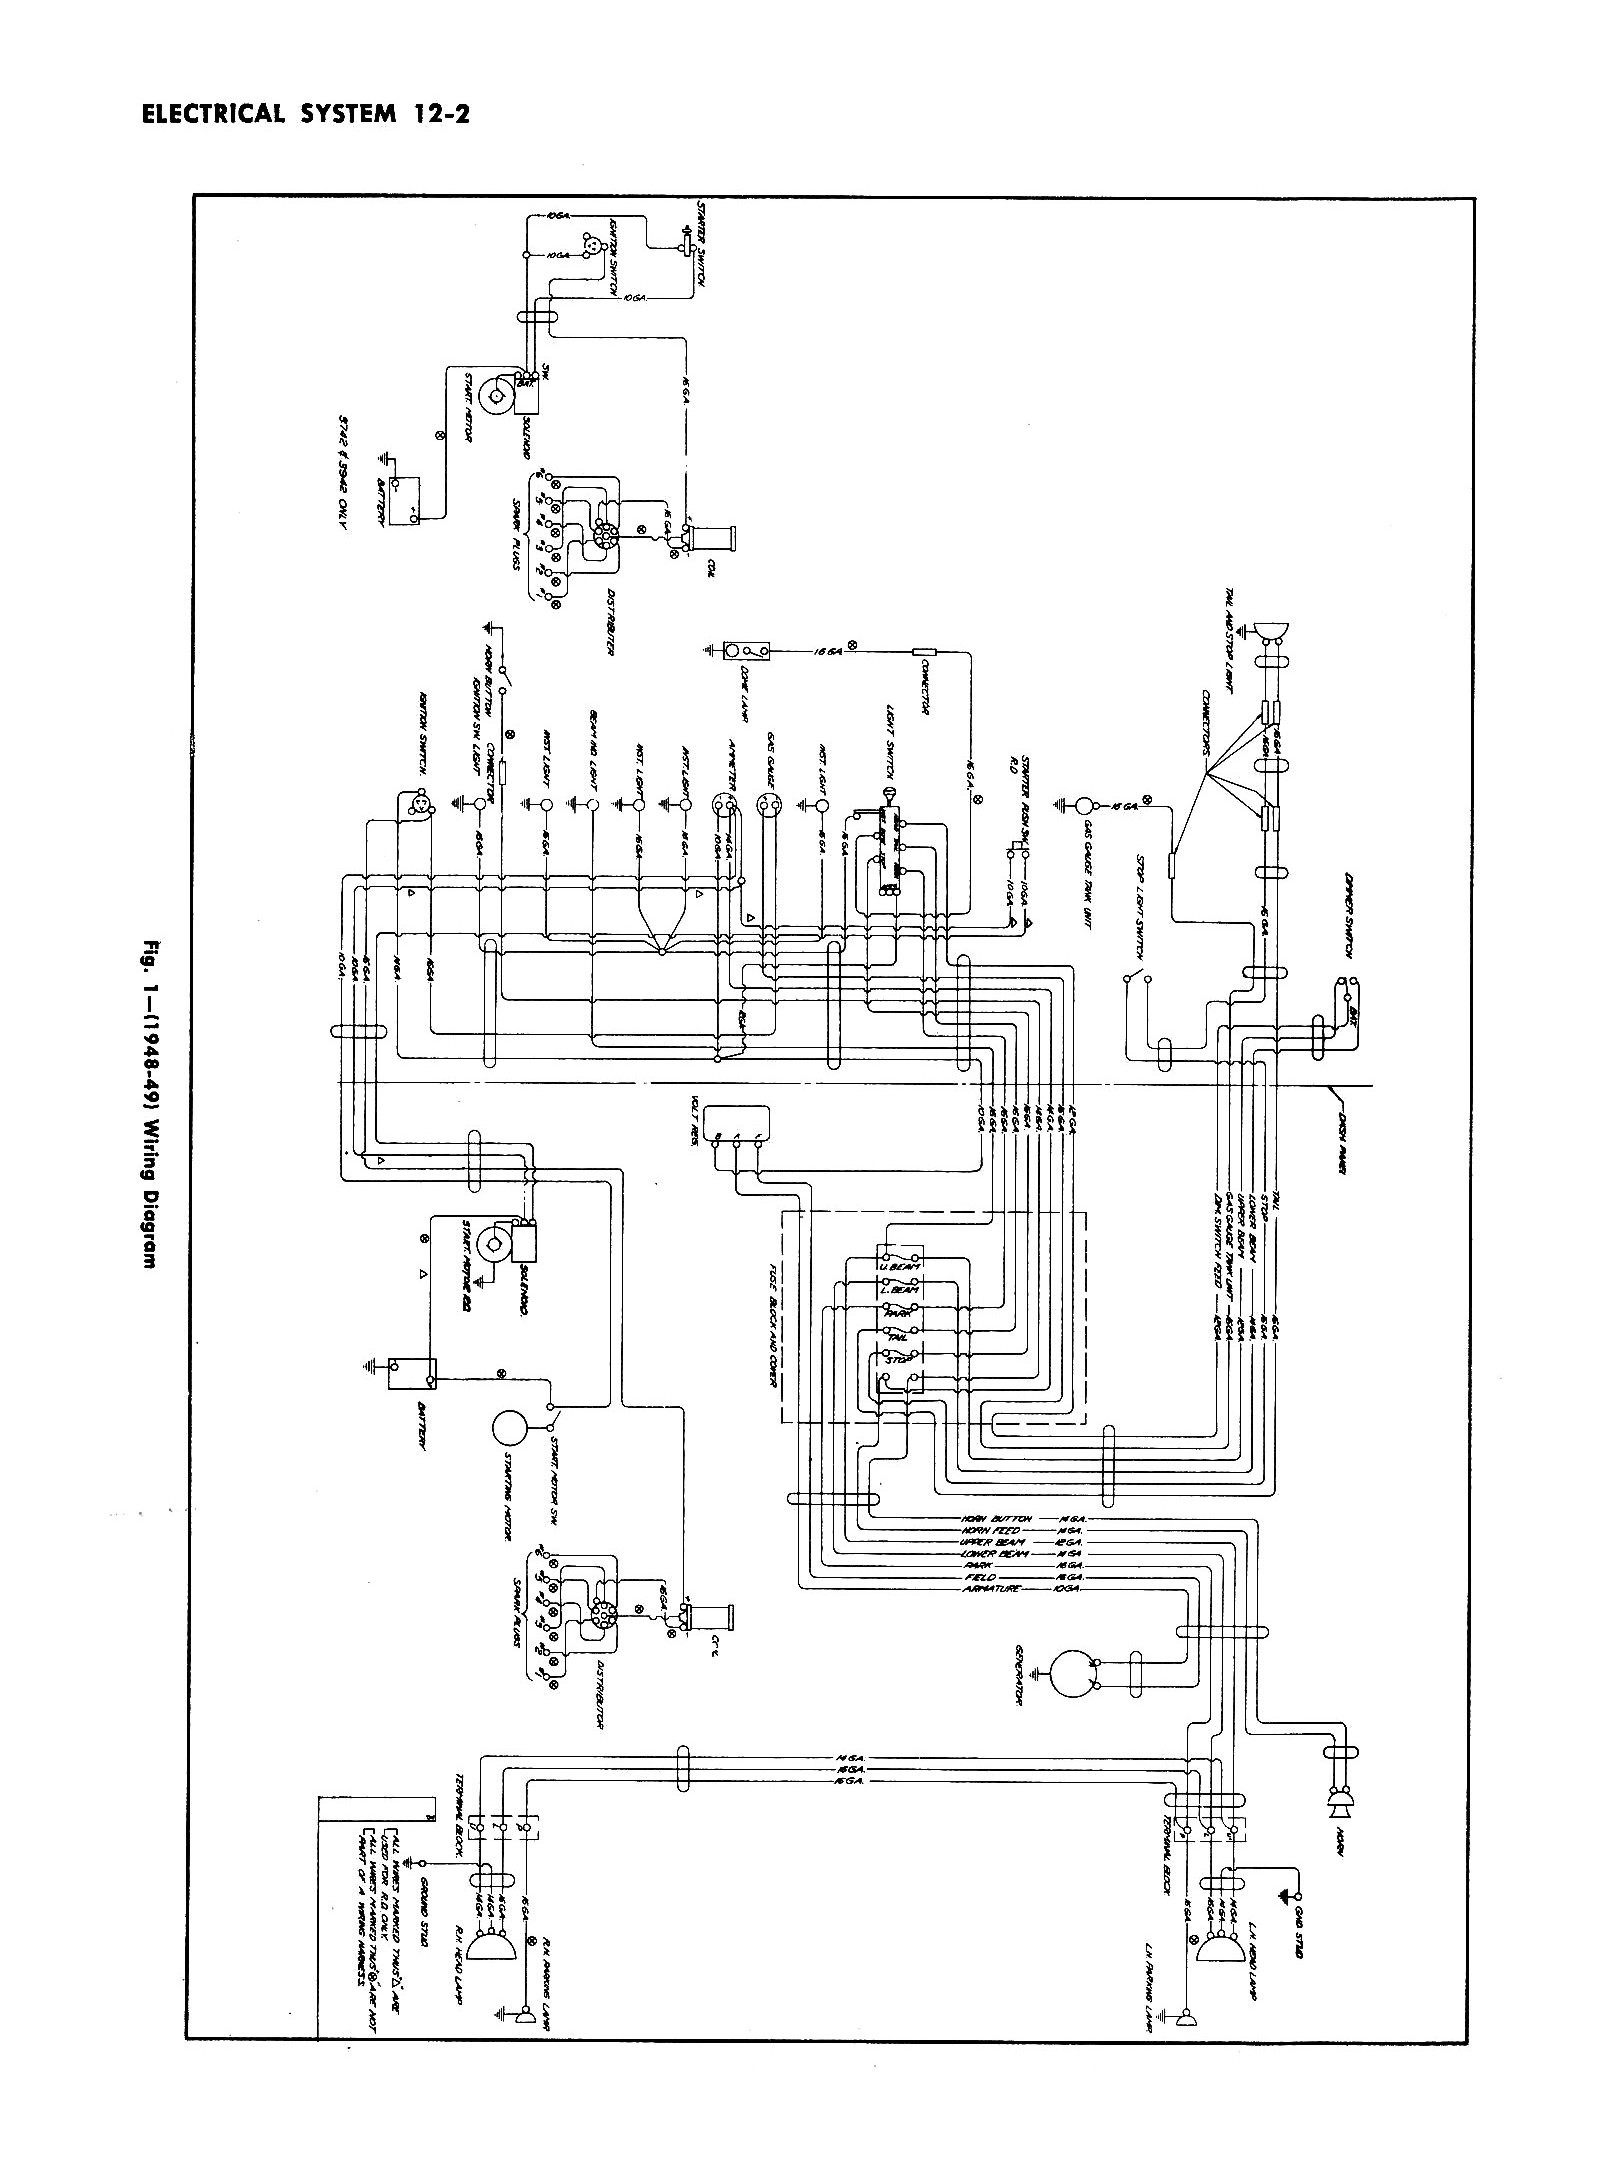 2tm14 Hello My 1997 Chevrolet Full Size Pickup Brake Lights Stopped further 91 Gmc Jimmy Fuse Box likewise Showthread besides 53set Ford 150 Download Pdf 1986 150 Wiring as well 2002 Chevy Venture Starter Location. on chevy lumina van problems